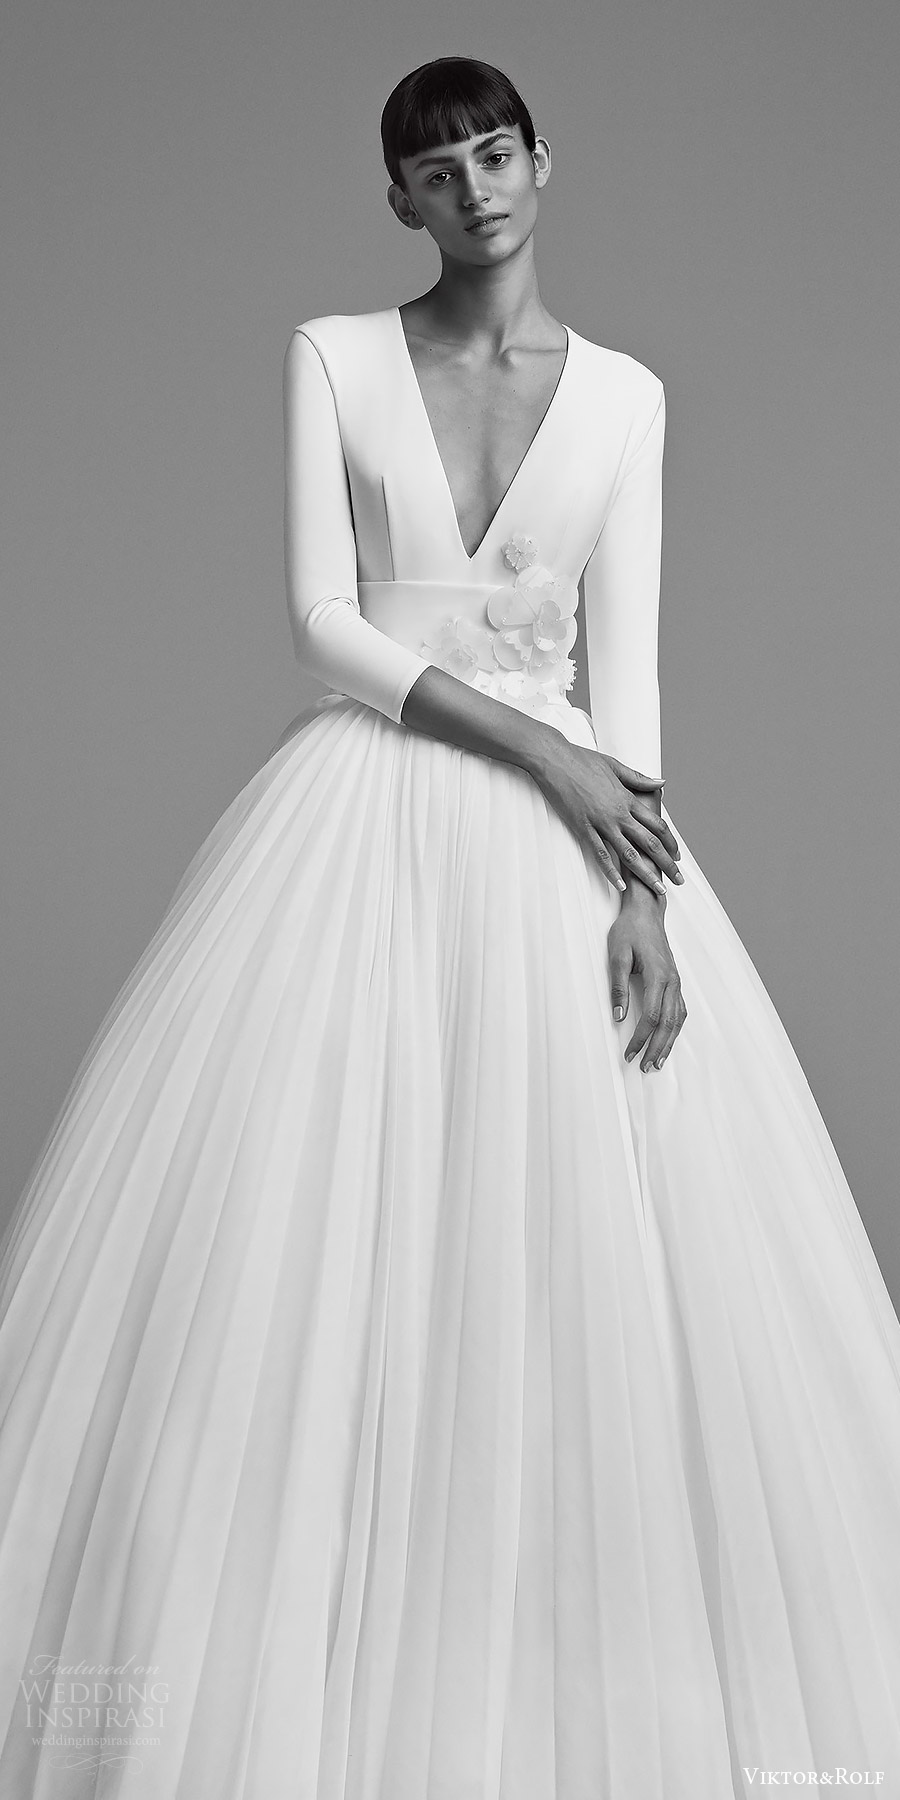 viktor and rolf fall 2018 bridal long sleeves deep v neck embellished waist ball gown wedding dress (22) zv elegant romantic modern minimal